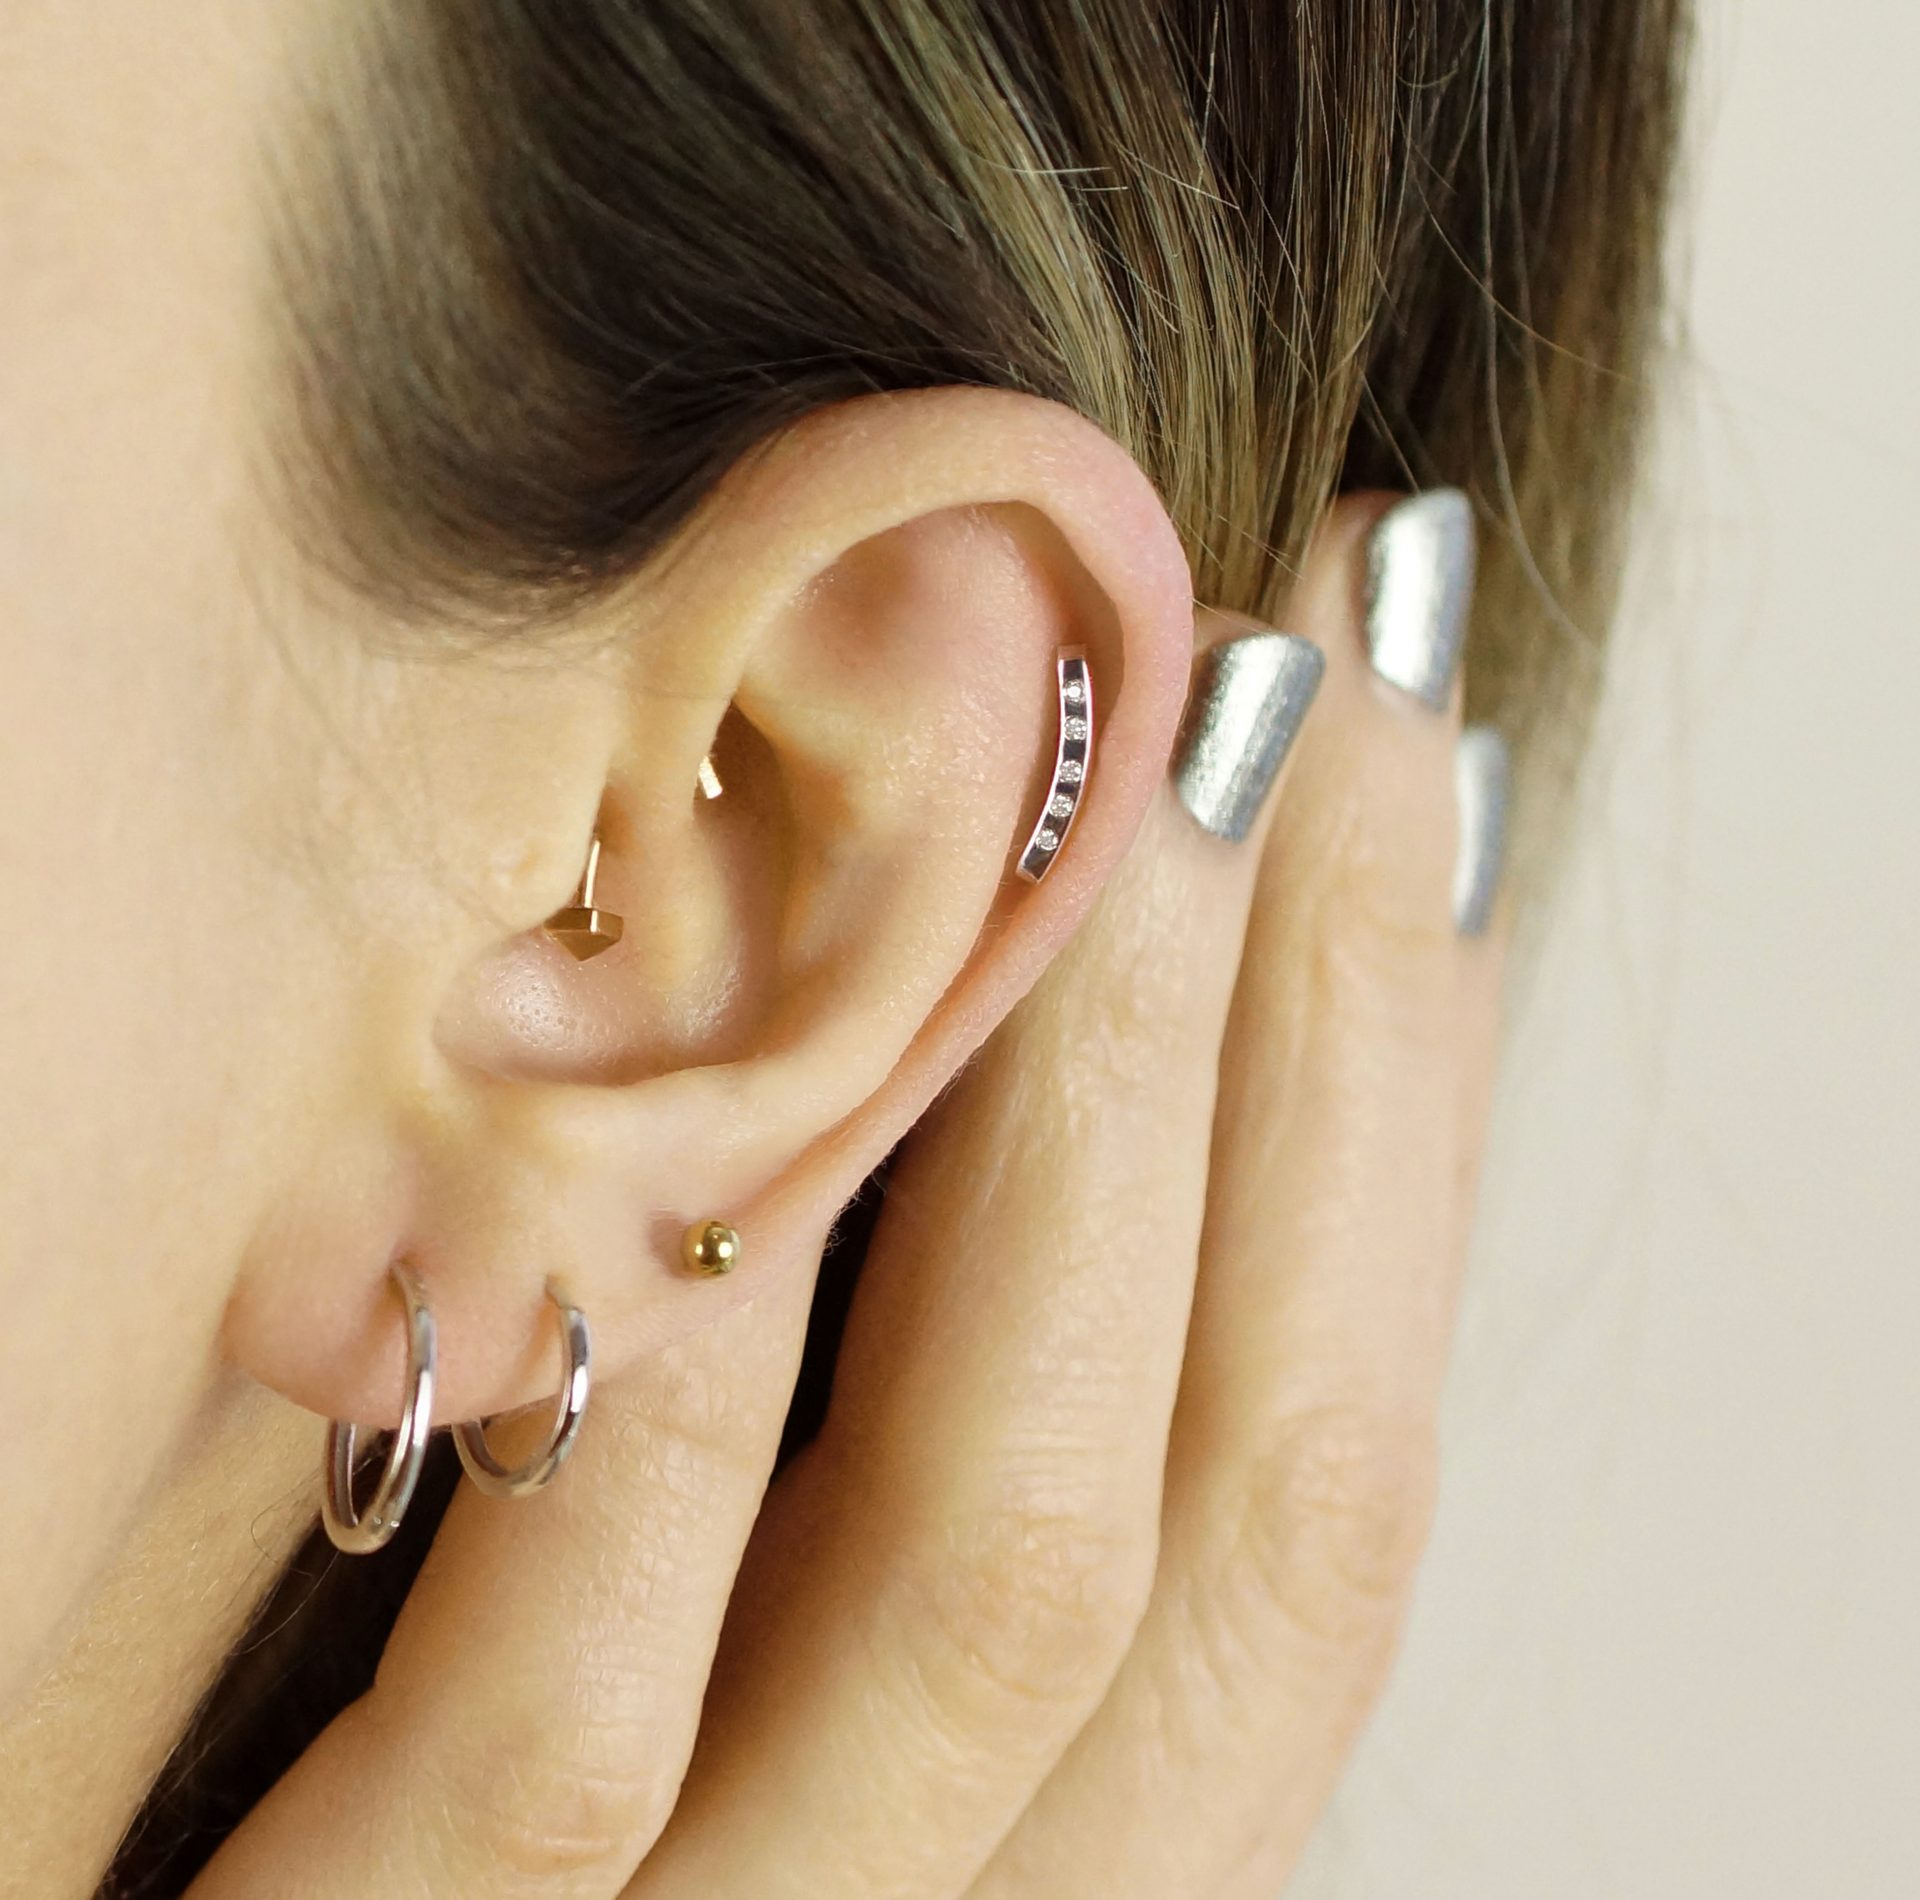 What is the most popular area for piercings ? A very good choice for multiple ear piercing combinations in 2020